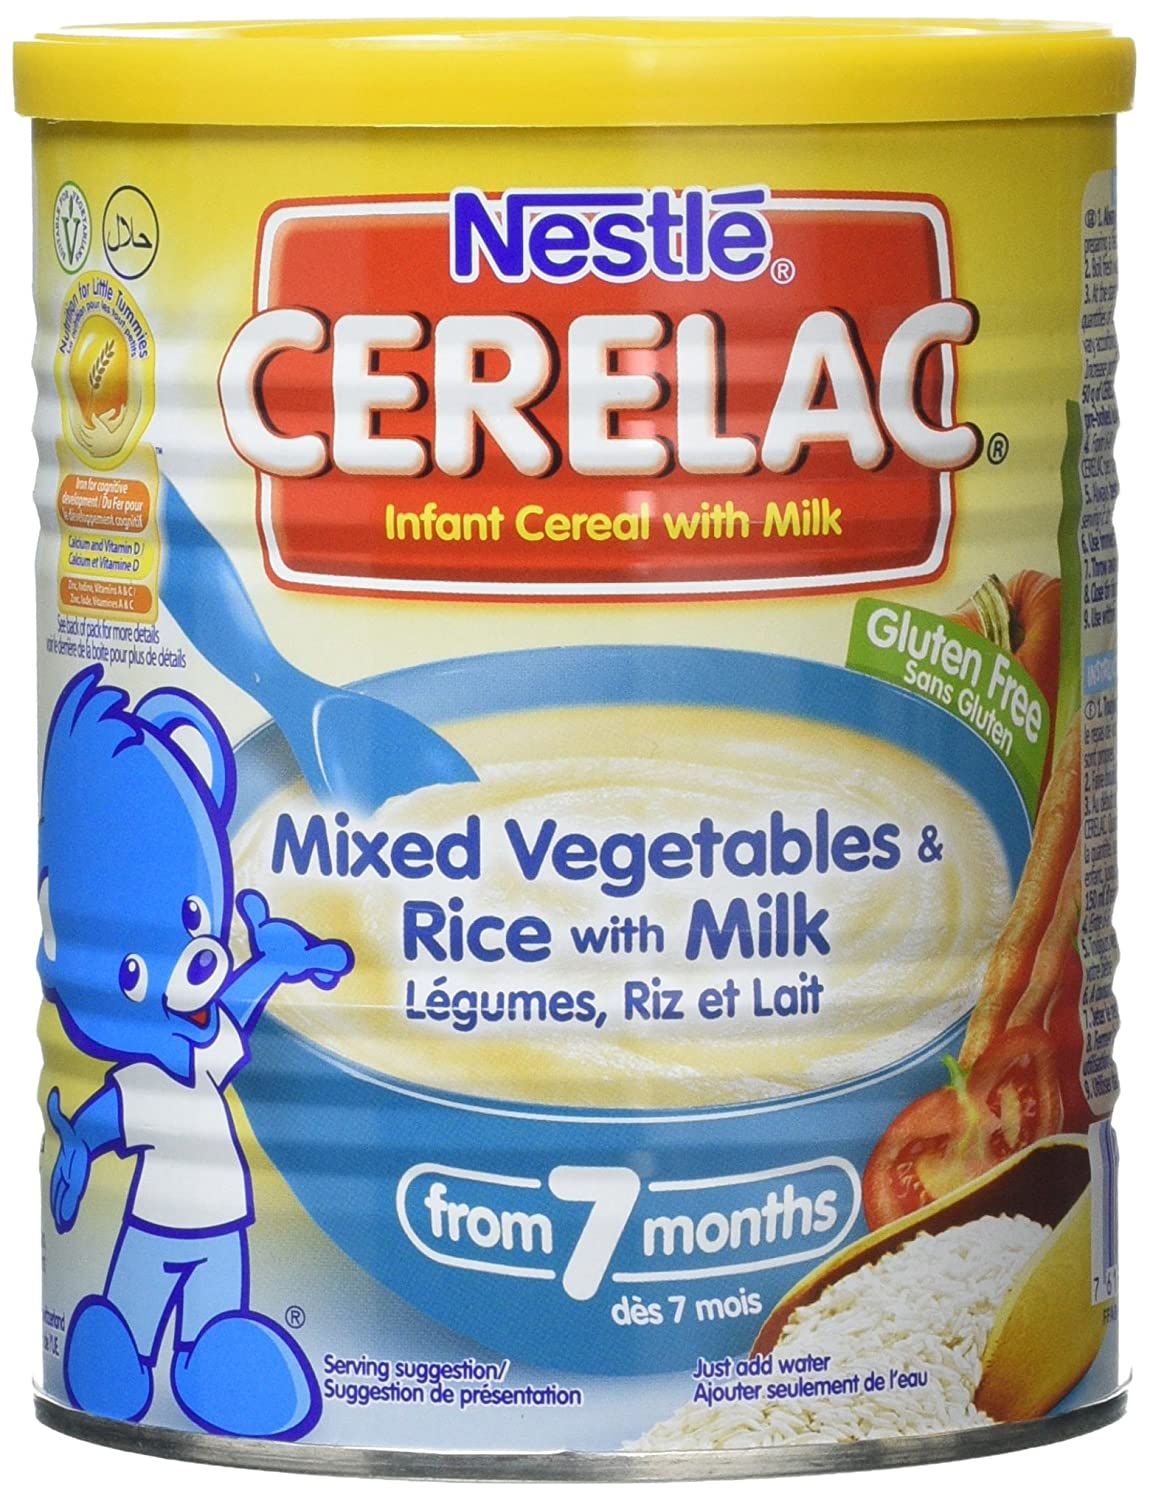 Nestl Cerelac Infant Cereals Wheat, 400g Nestlé 105252546